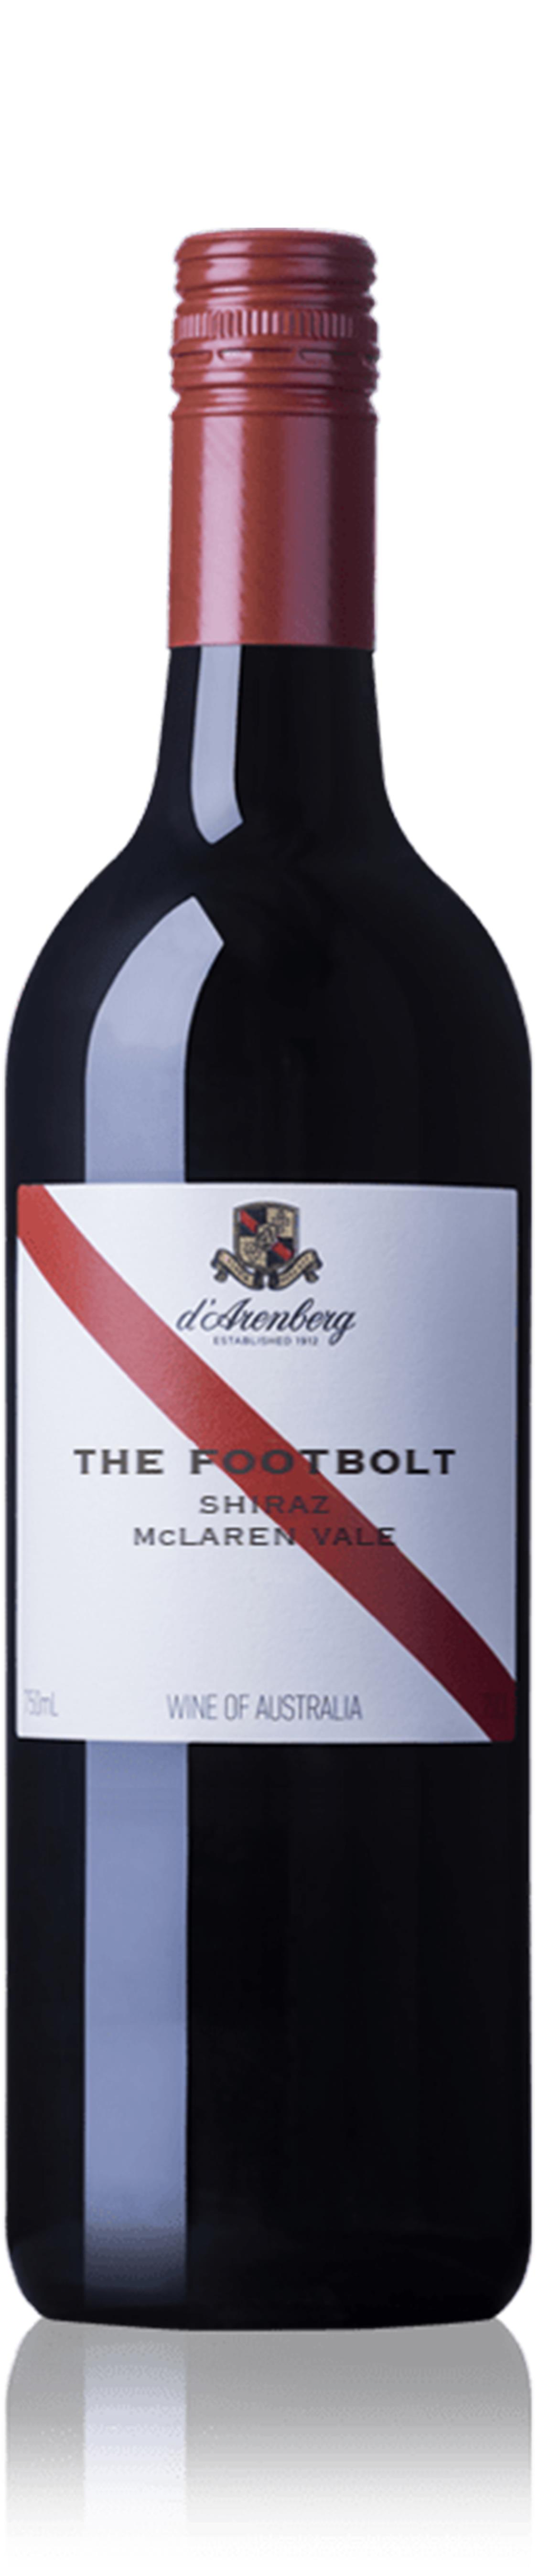 d'Arenberg The Footbolt Shiraz, 2014